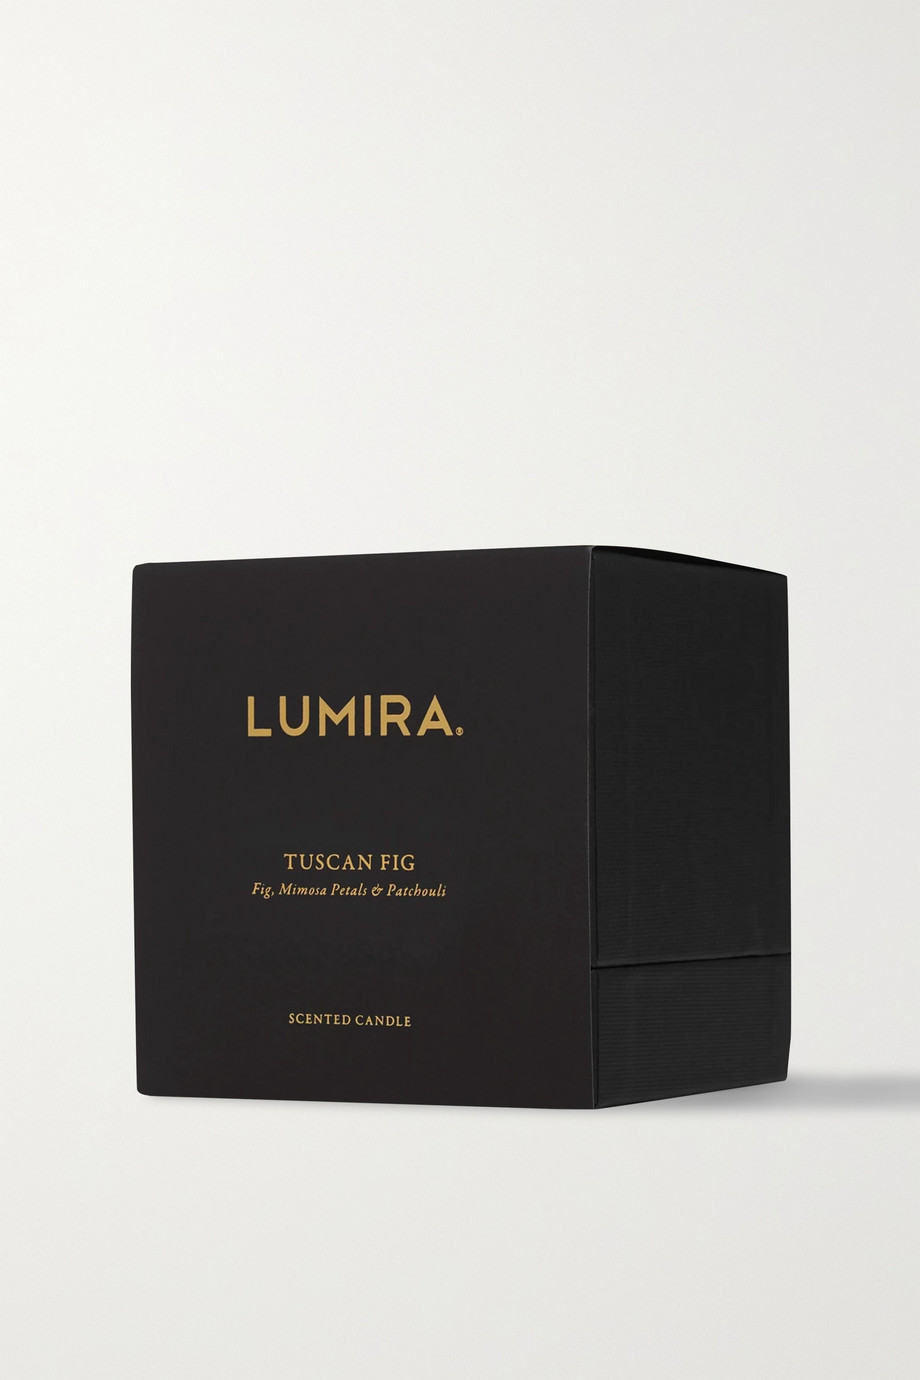 LUMIRA Tuscan Fig scented candle, 300g